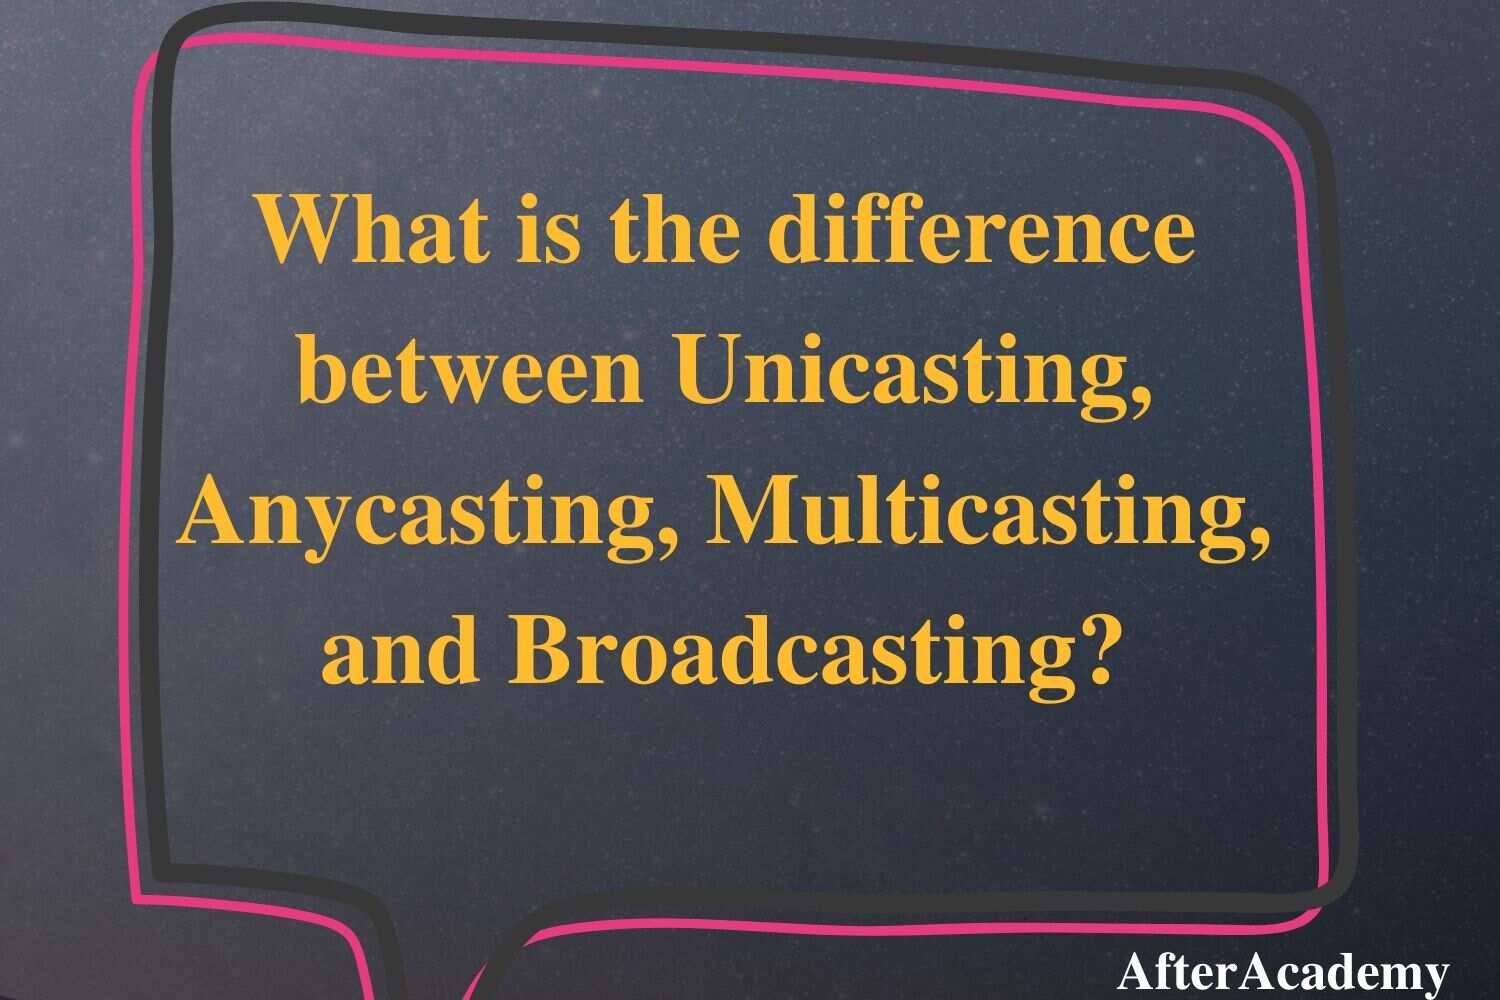 What is the difference between Unicasting, Anycasting, Multicasting, and Broadcasting?